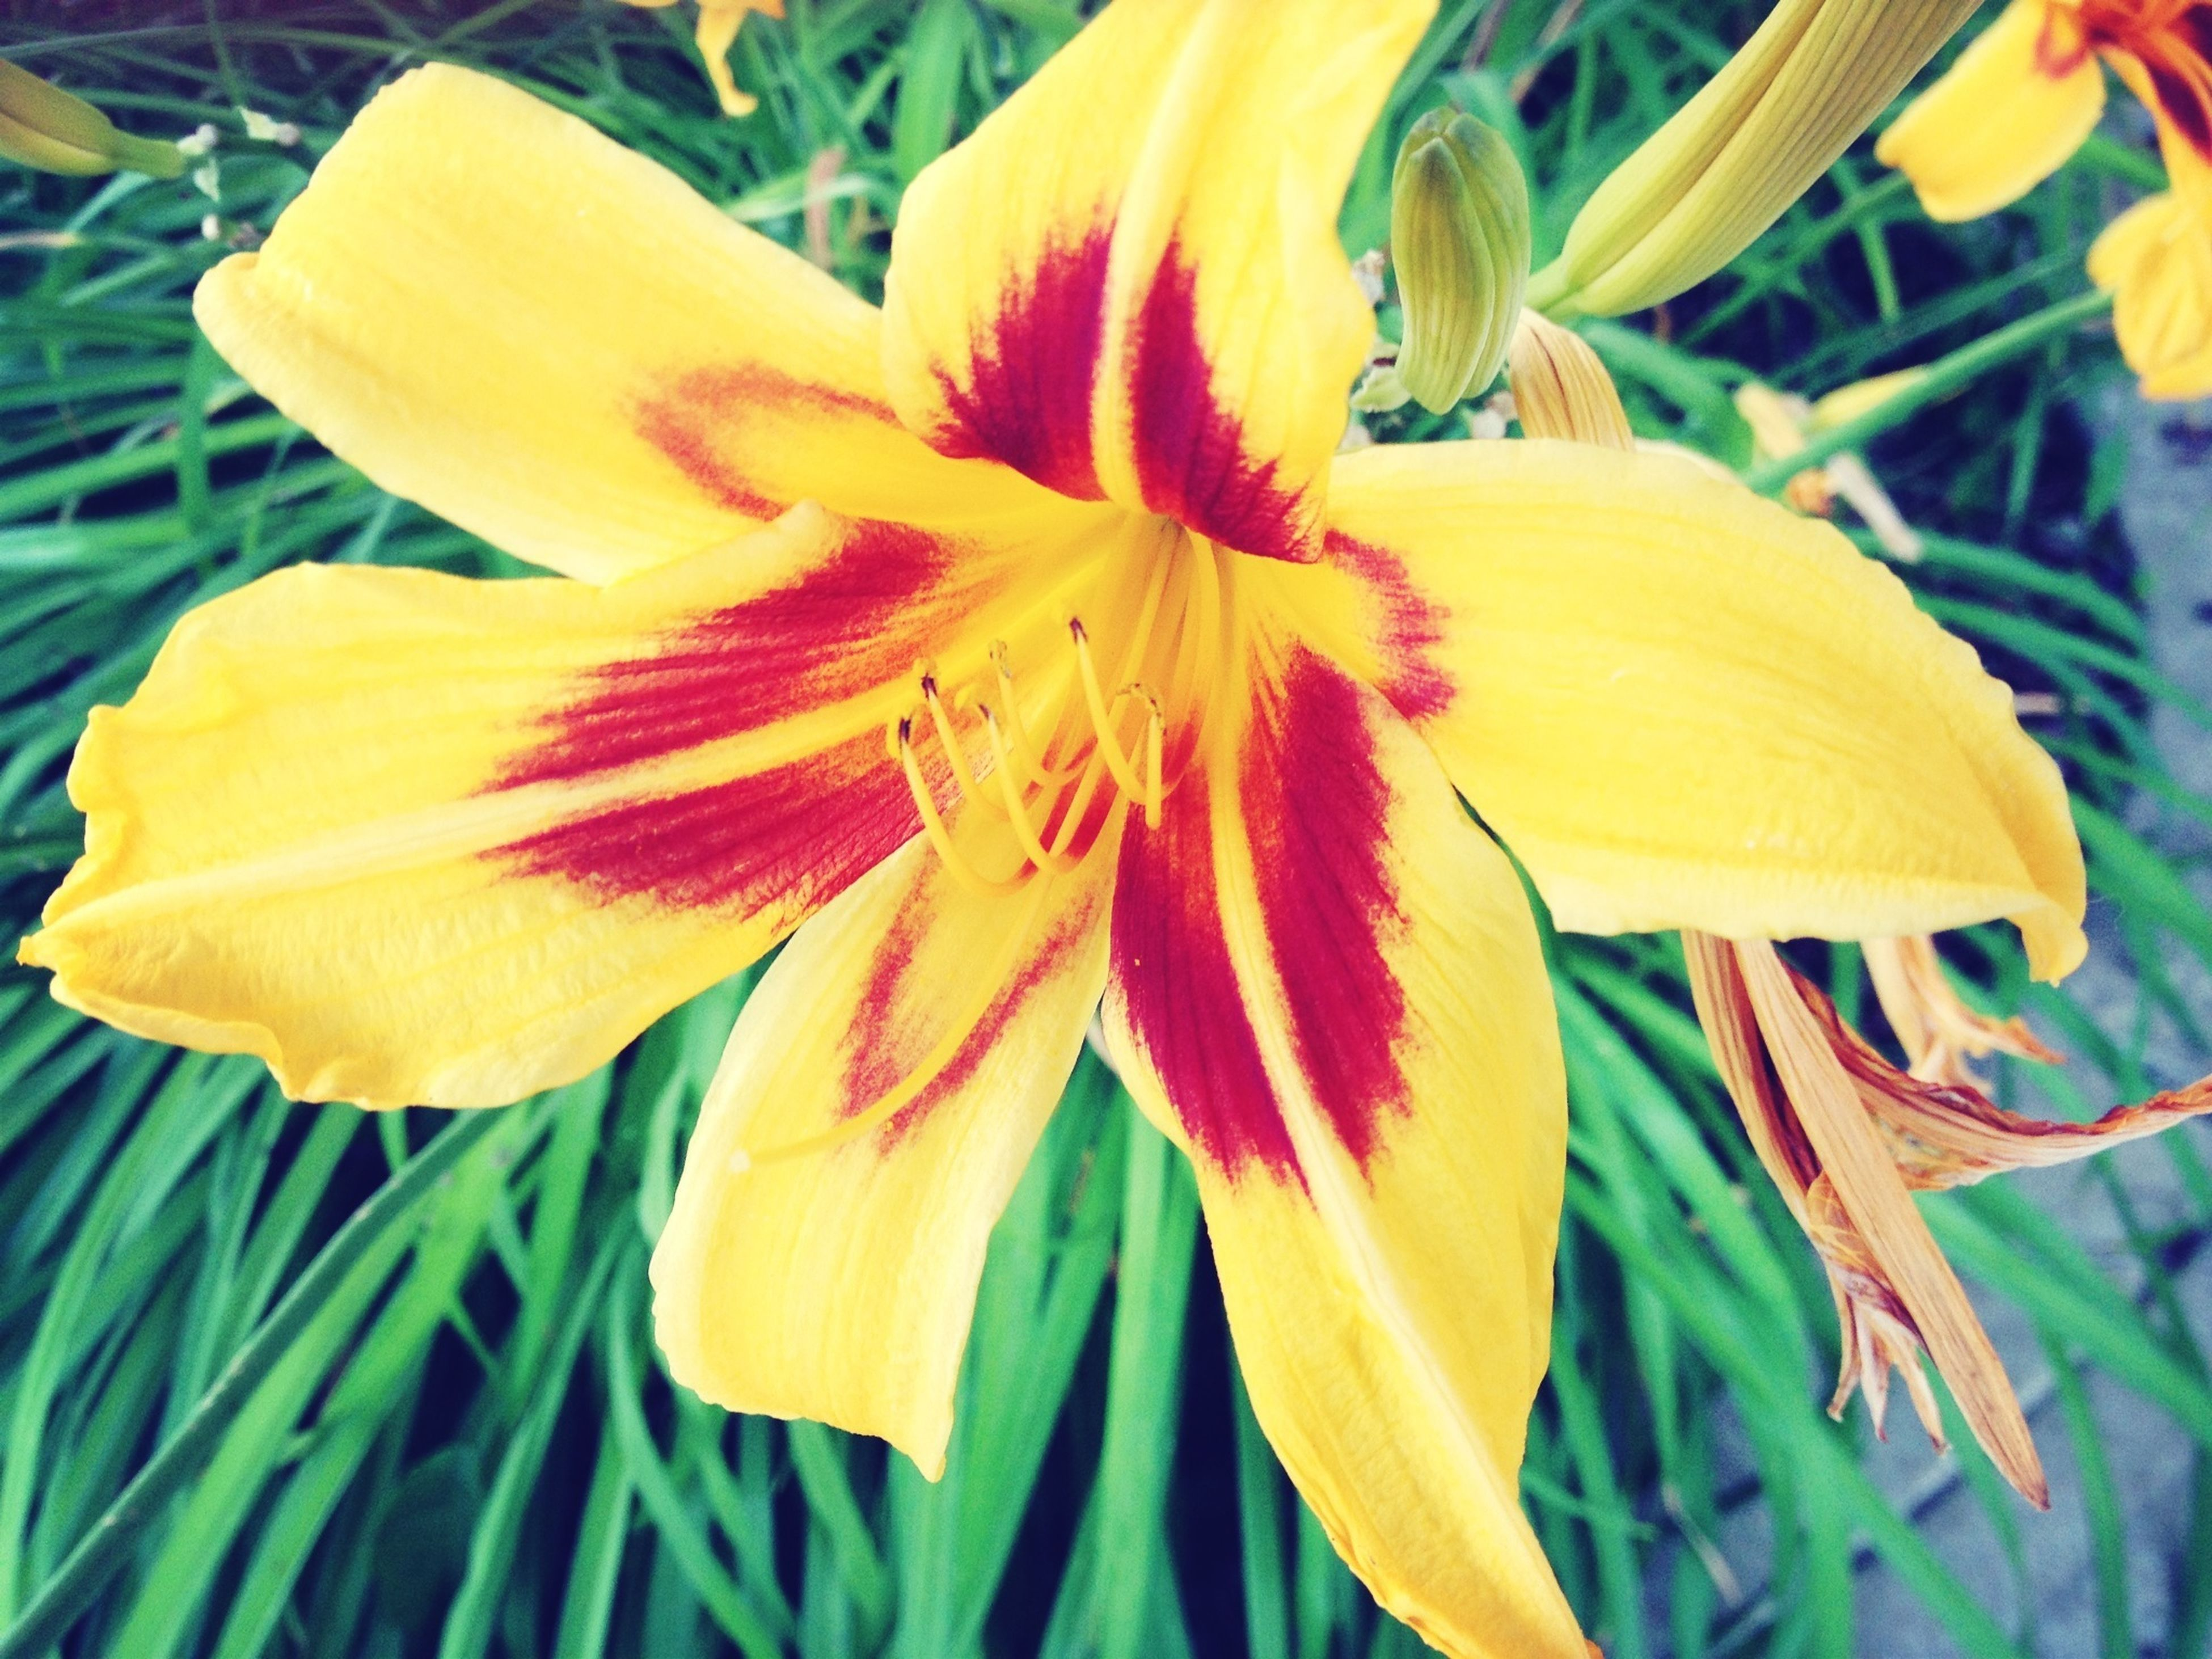 flower, petal, flower head, freshness, fragility, yellow, growth, beauty in nature, close-up, blooming, nature, stamen, single flower, pollen, focus on foreground, plant, in bloom, blossom, park - man made space, day